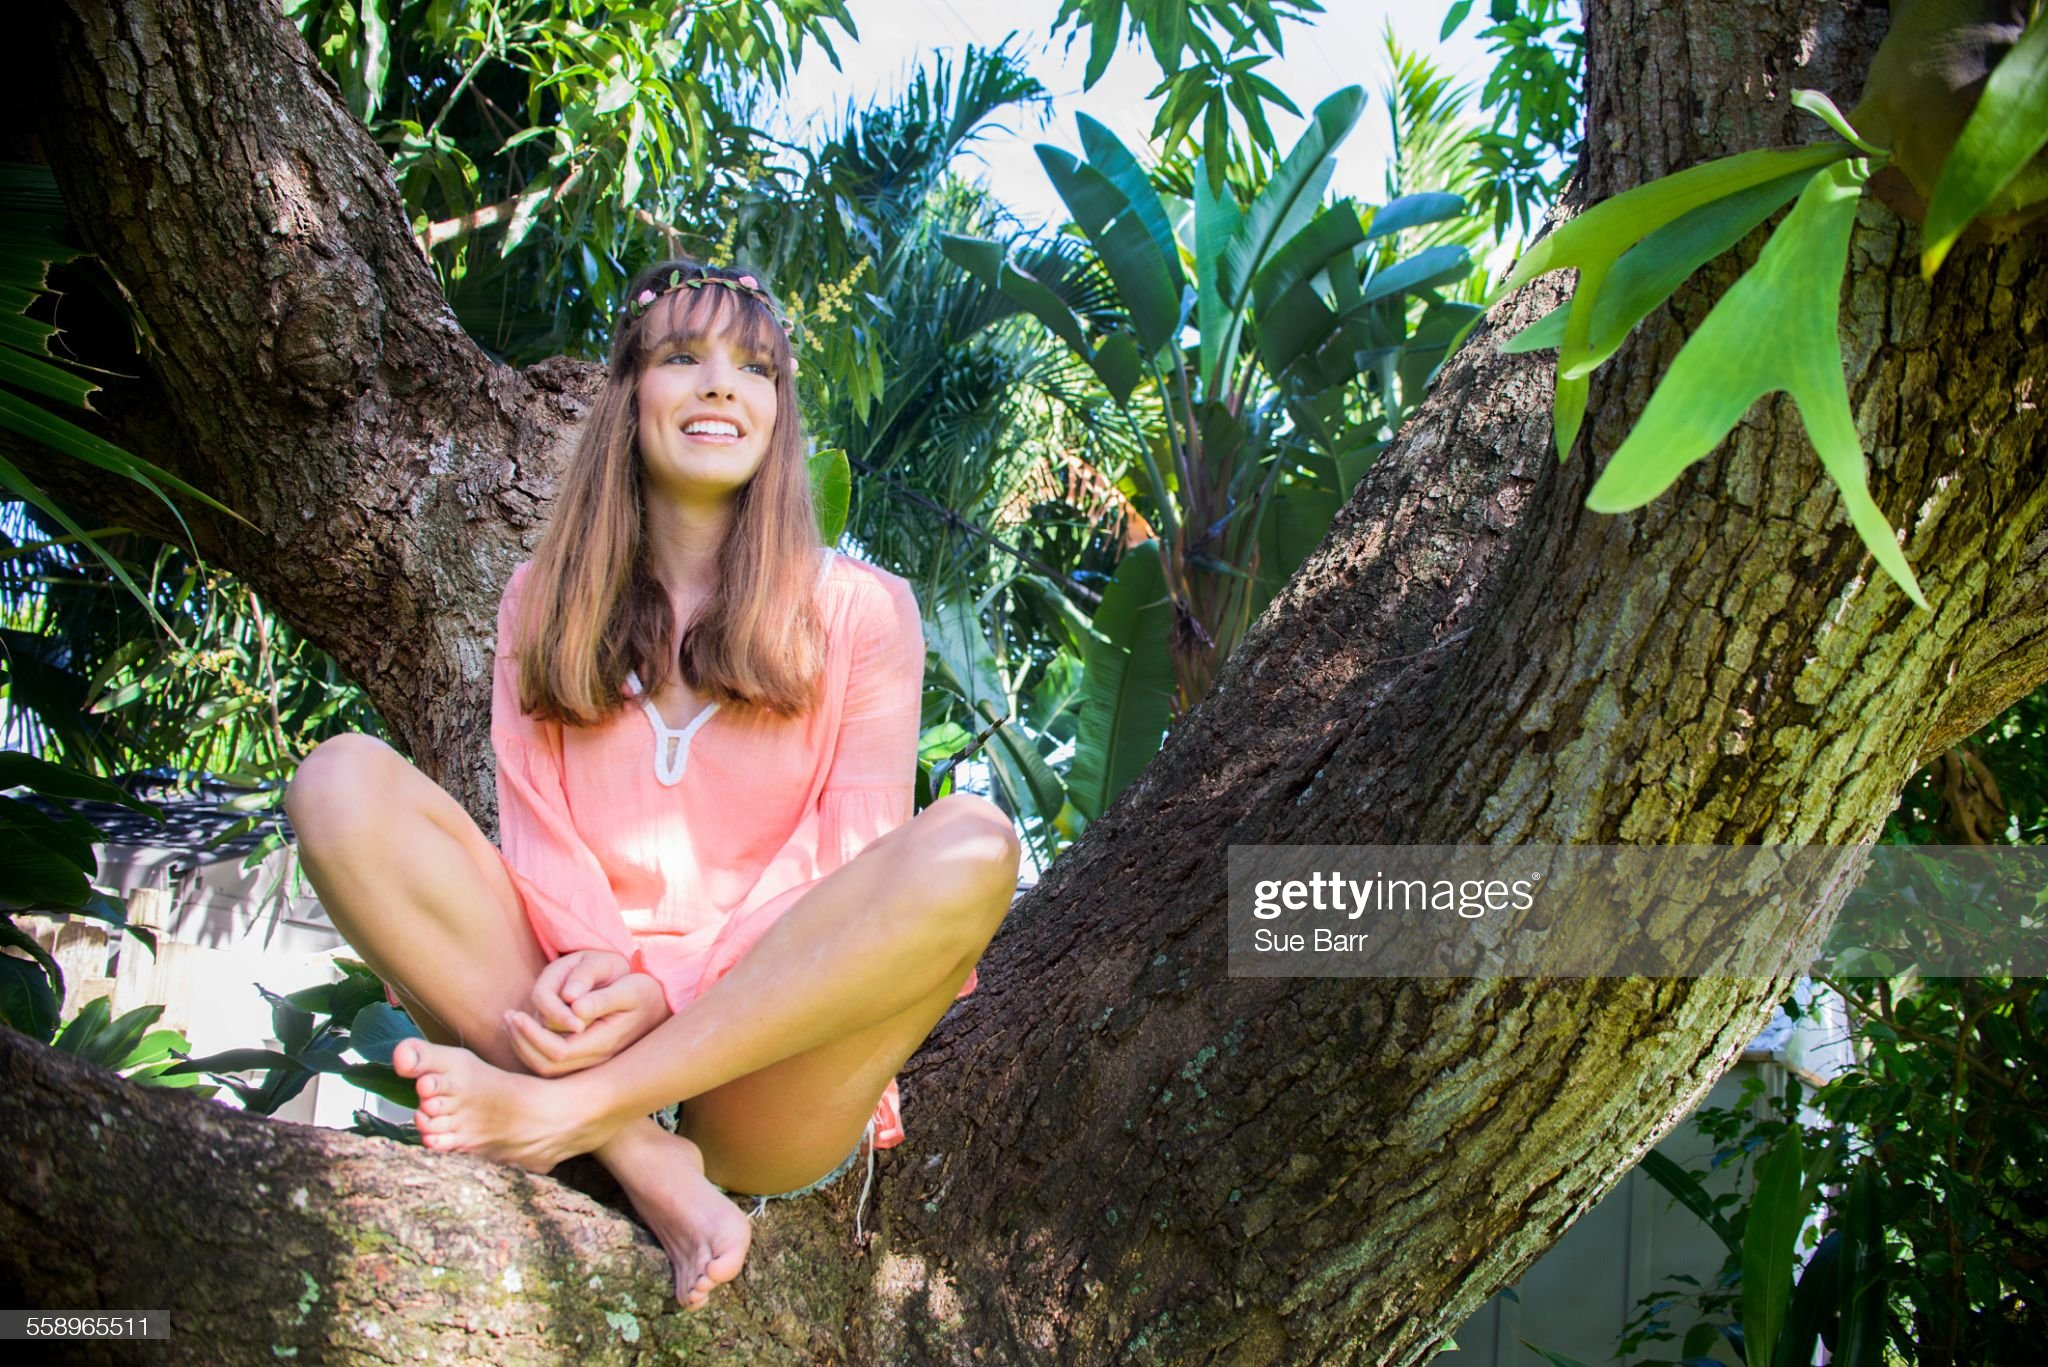 https://media.gettyimages.com/photos/portrait-of-young-woman-looking-out-from-tree-picture-id558965511?s=2048x2048